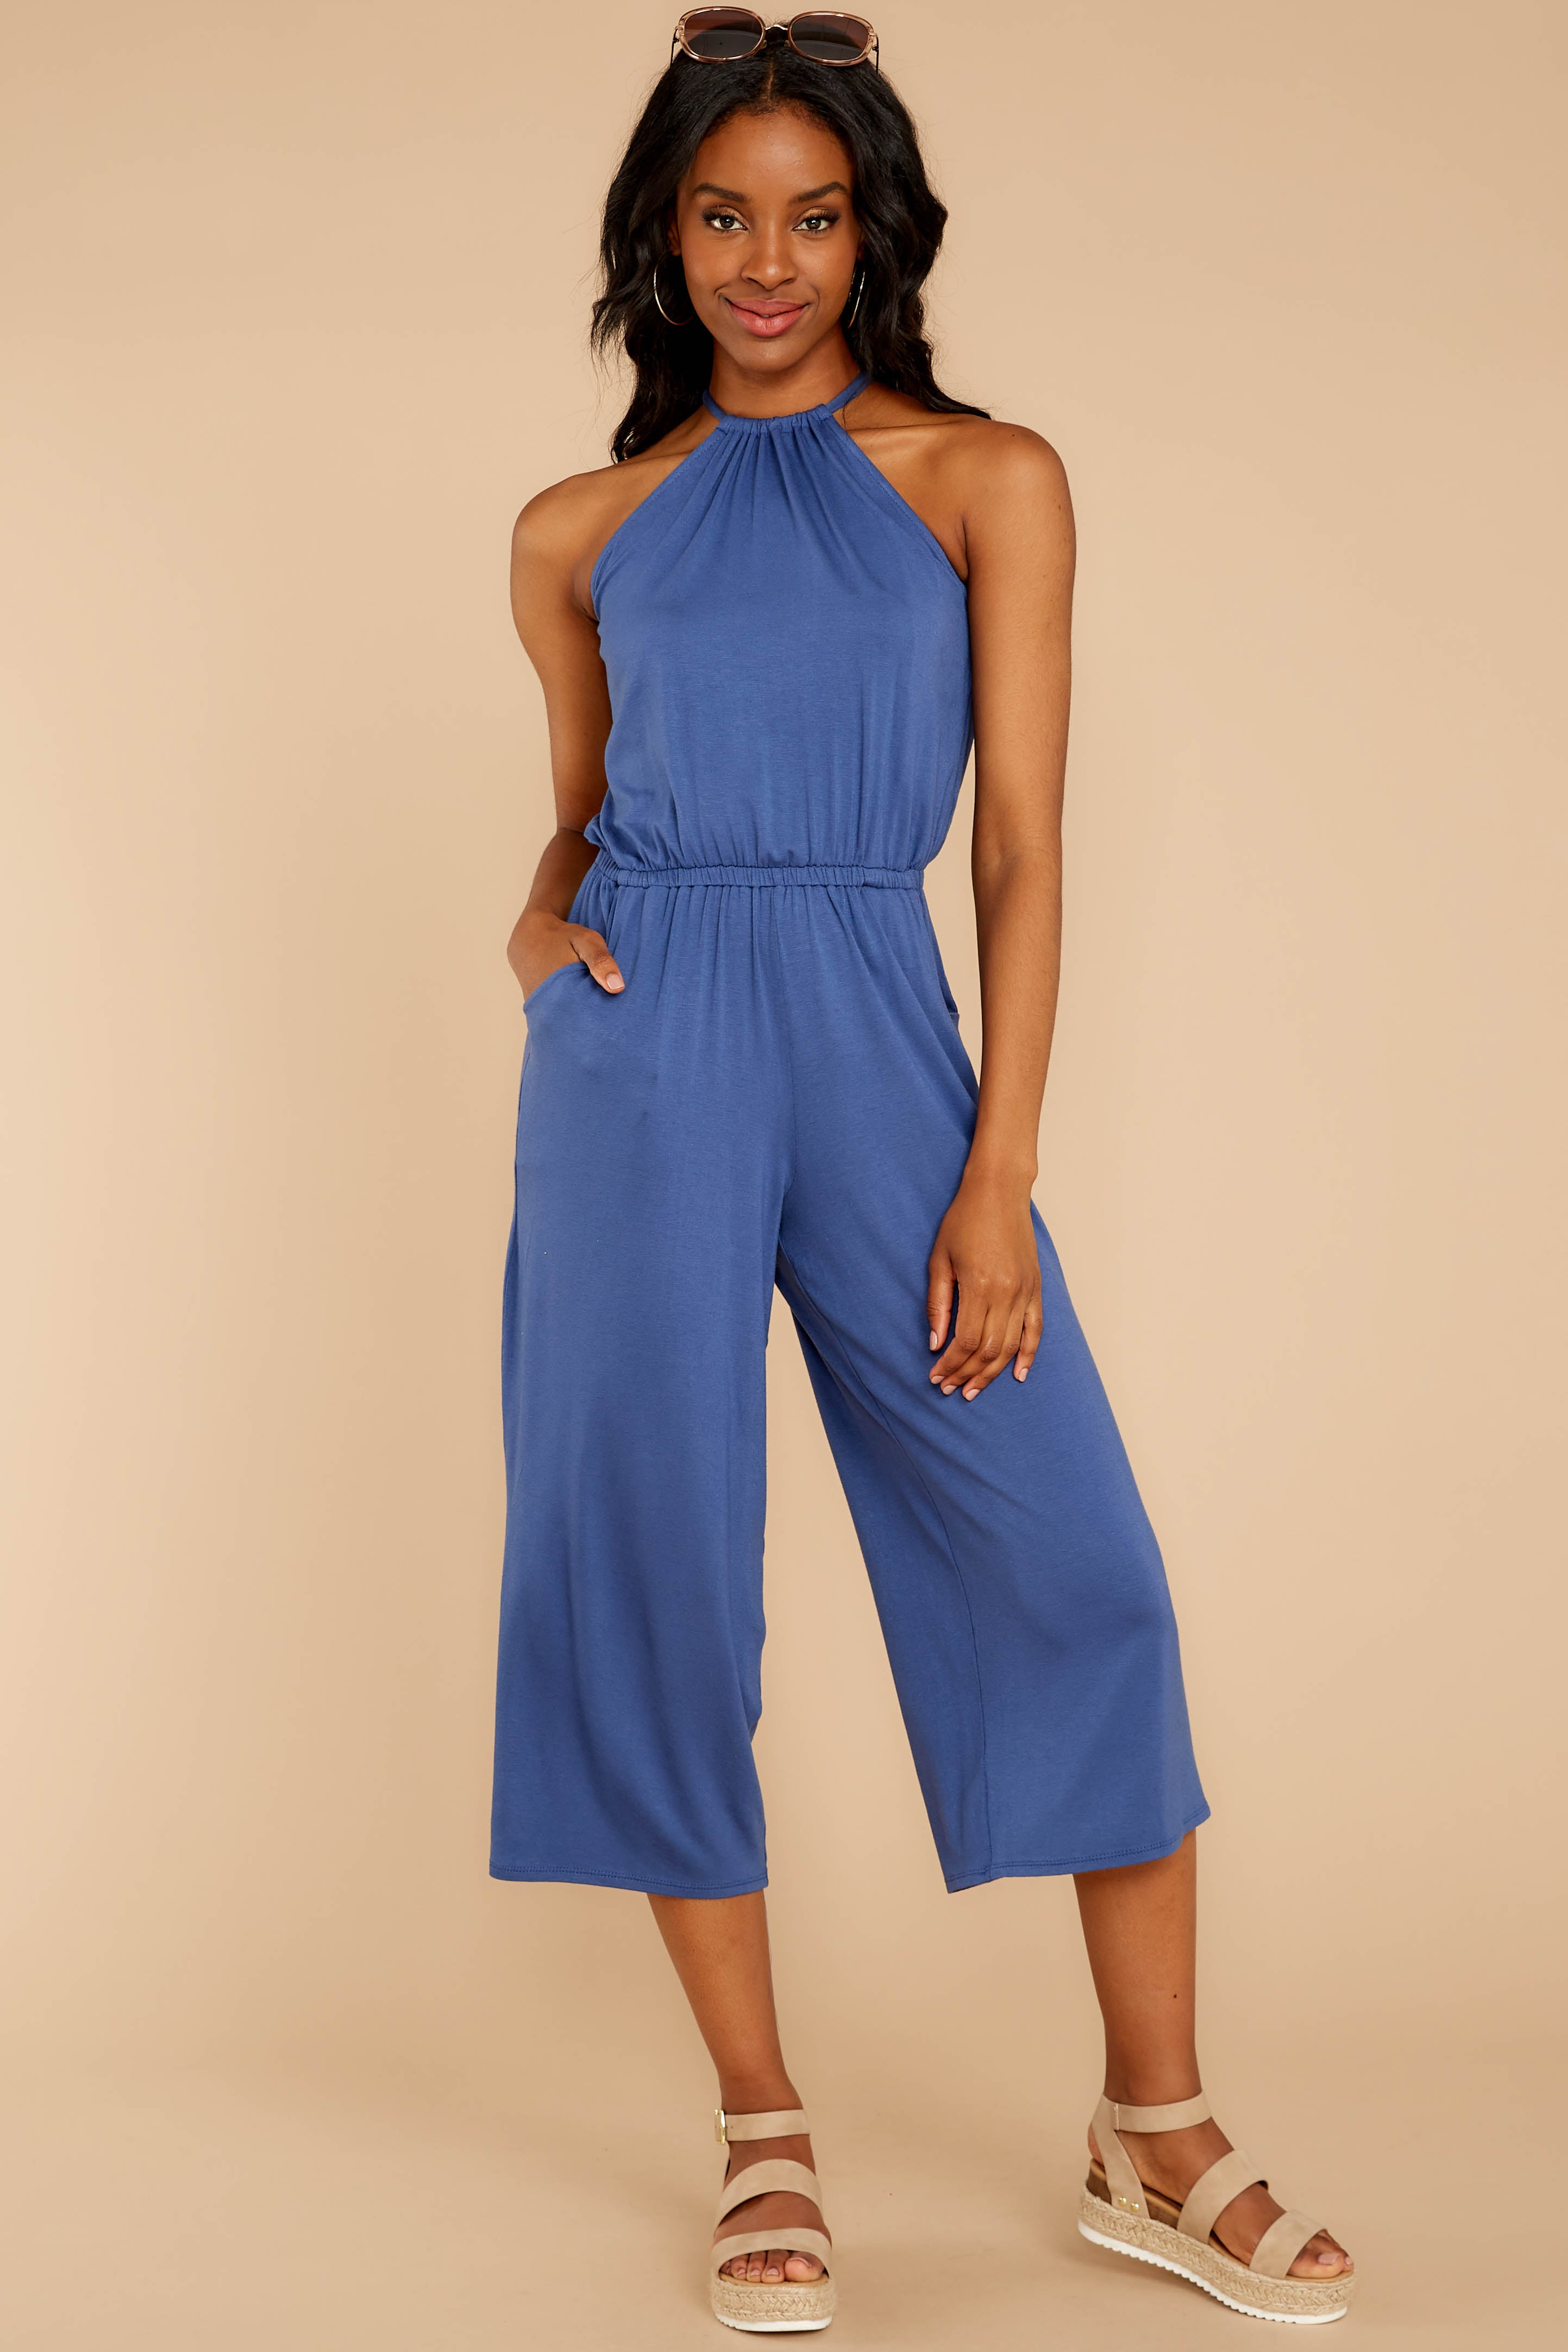 No Hesitations Parisian Blue Jumpsuit